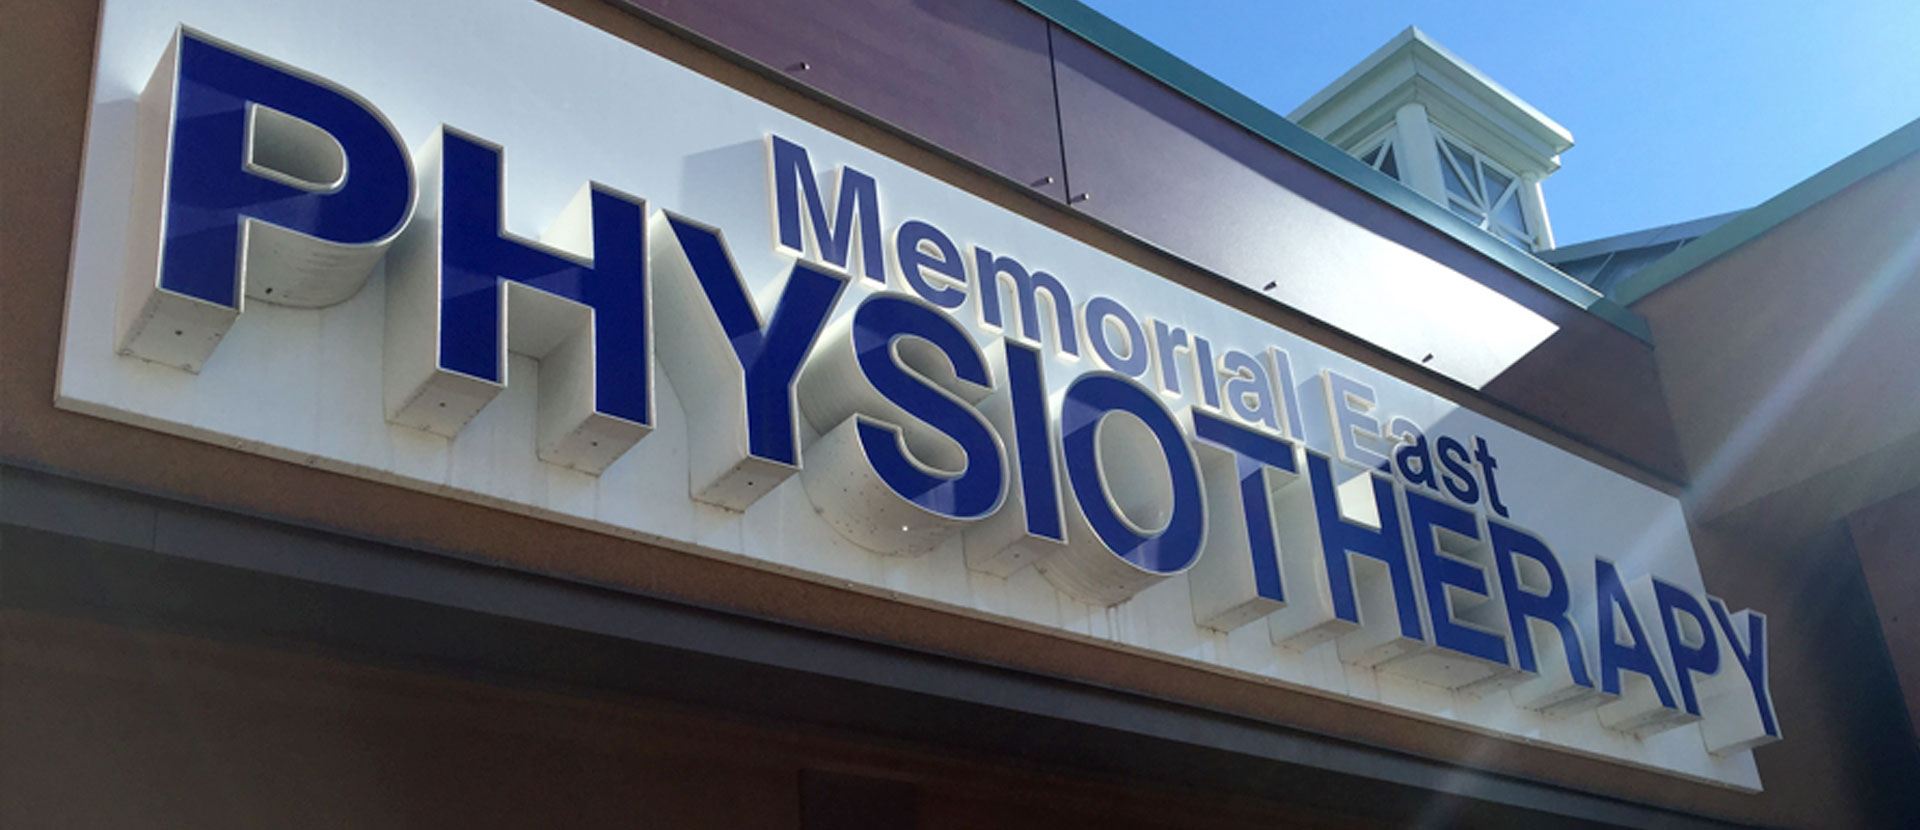 Memorial East Physical Therapy Clinic: Physical Therapy, Acupuncture and Rehabilitation in Calgary